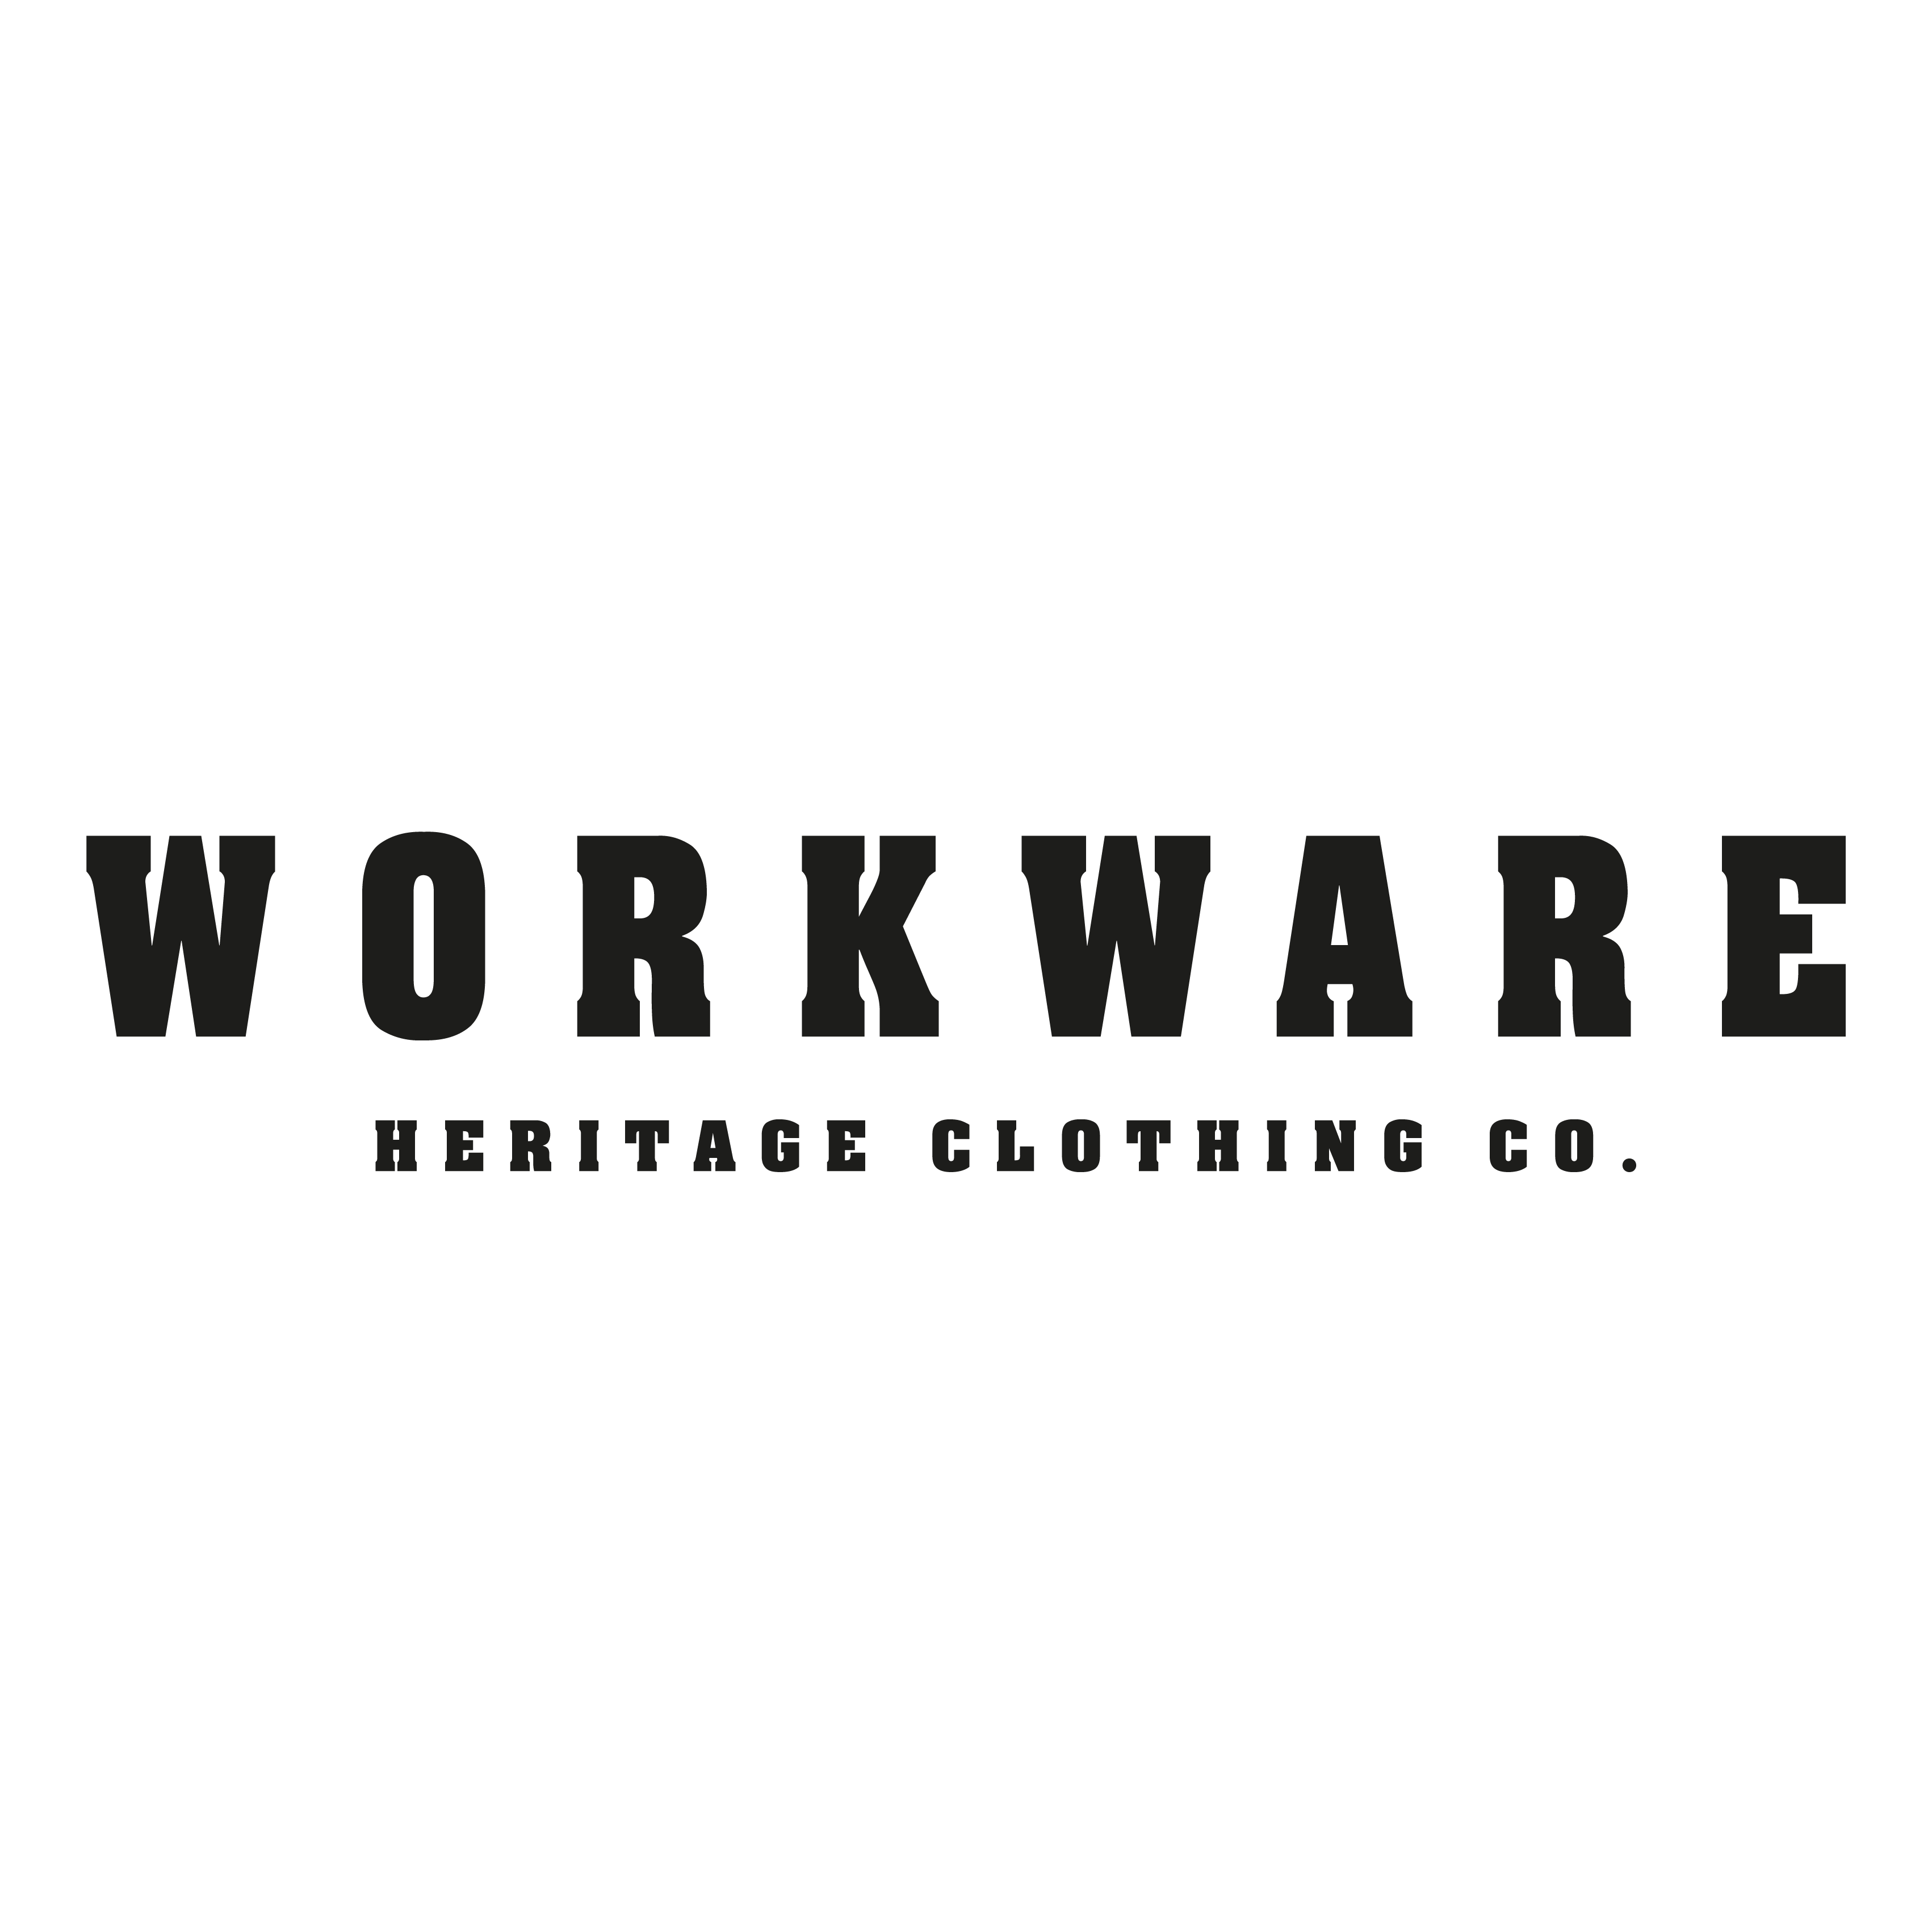 WORKWARE HC CO